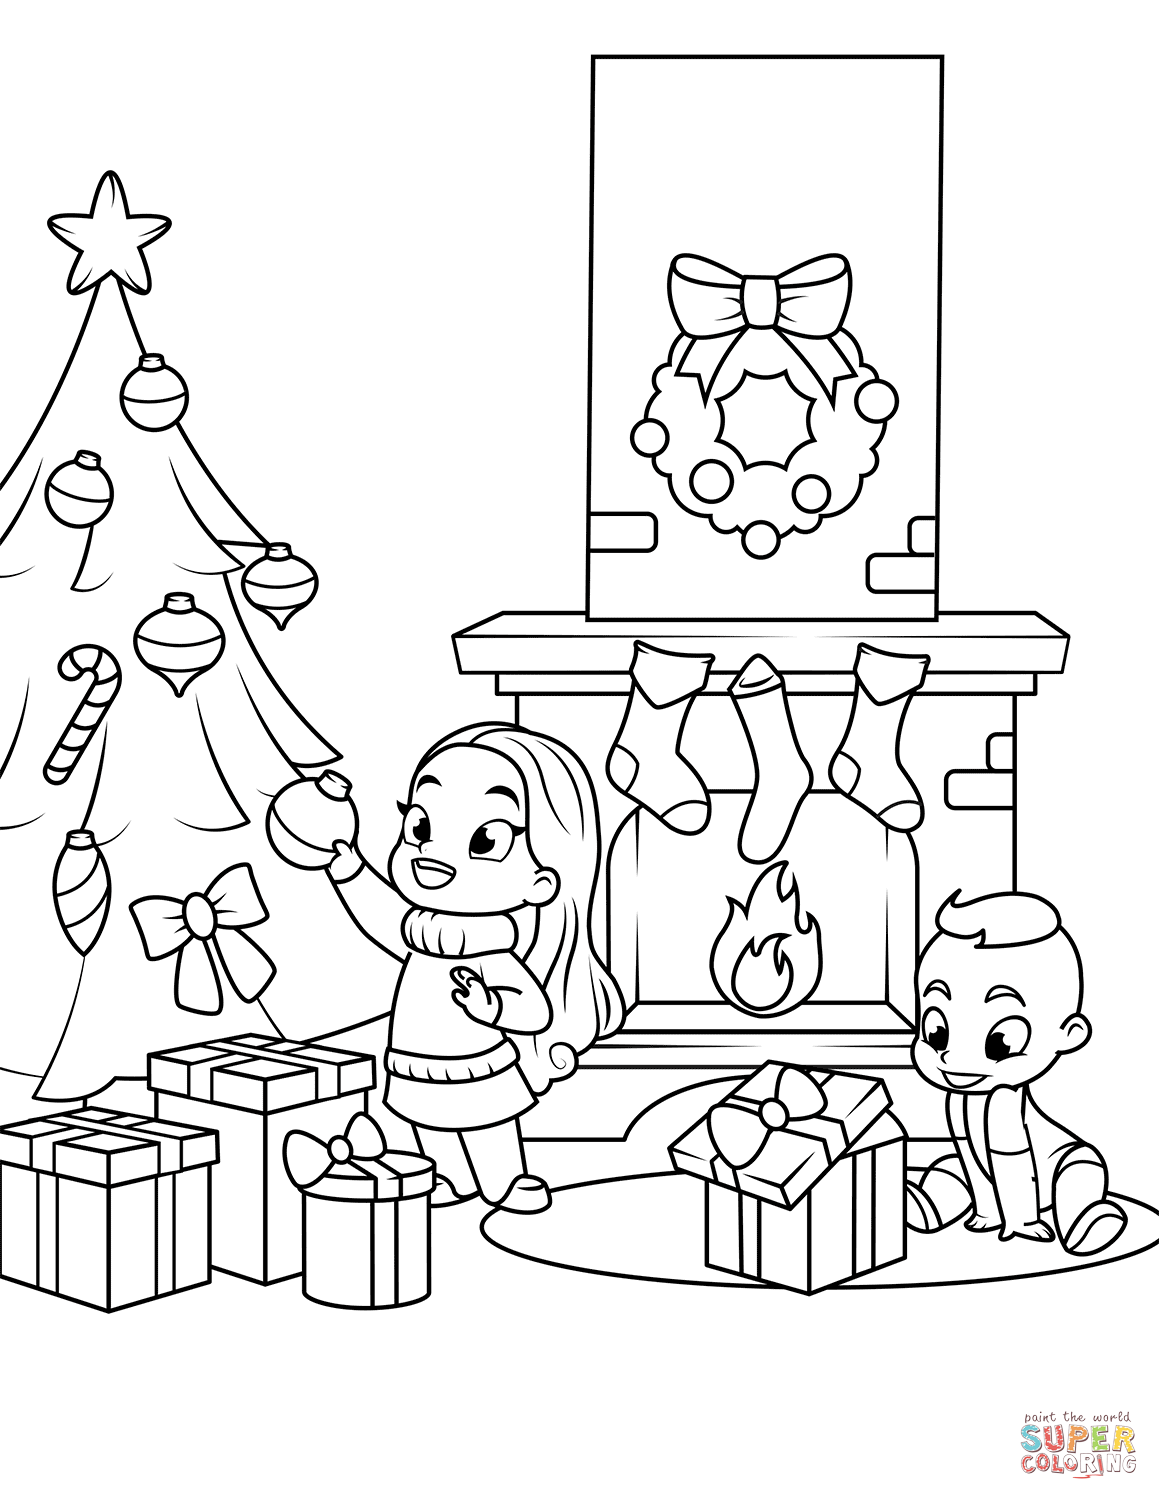 Christmas Fireplace Drawing at GetDrawings com | Free for